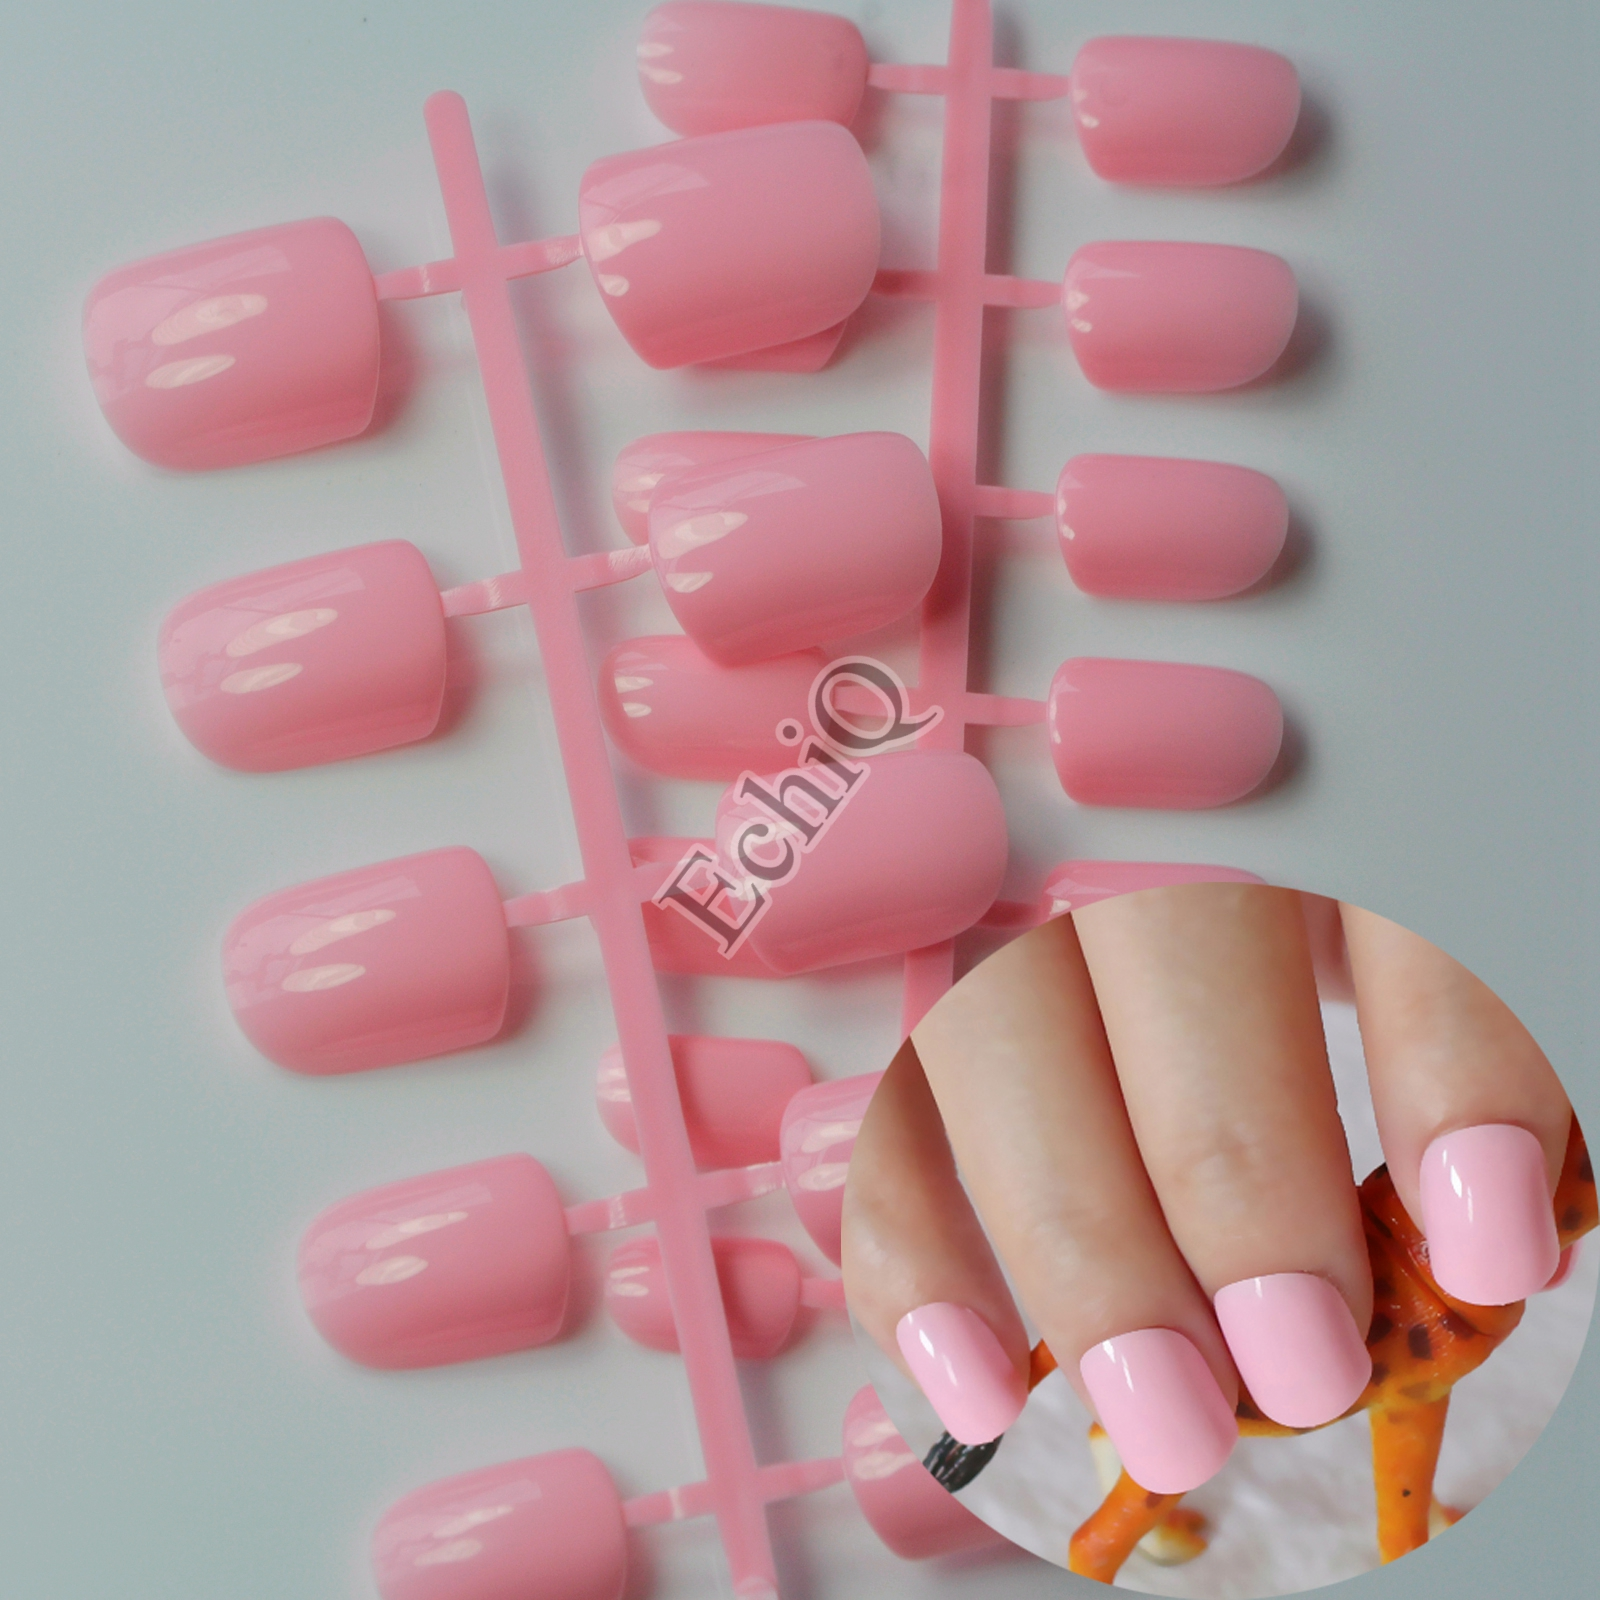 24pcs Sweet Baby Pink Medium Flat False Nail Acrylic Manicure Candy ...